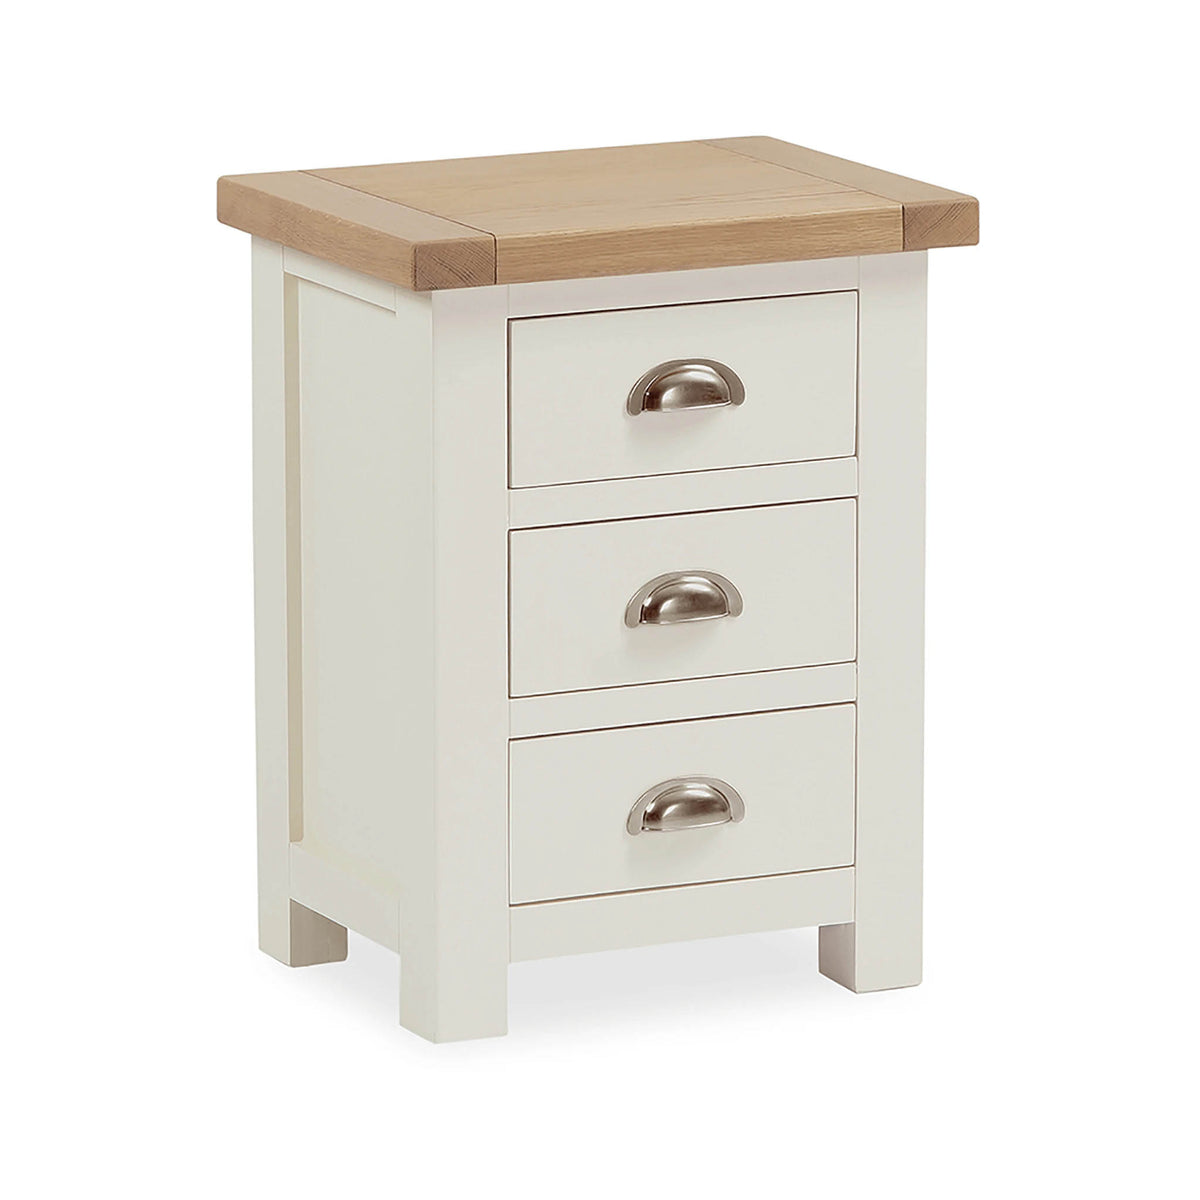 The Daymer Cream Painted 3 Drawer Oak Bedside Table from Roseland Furniture